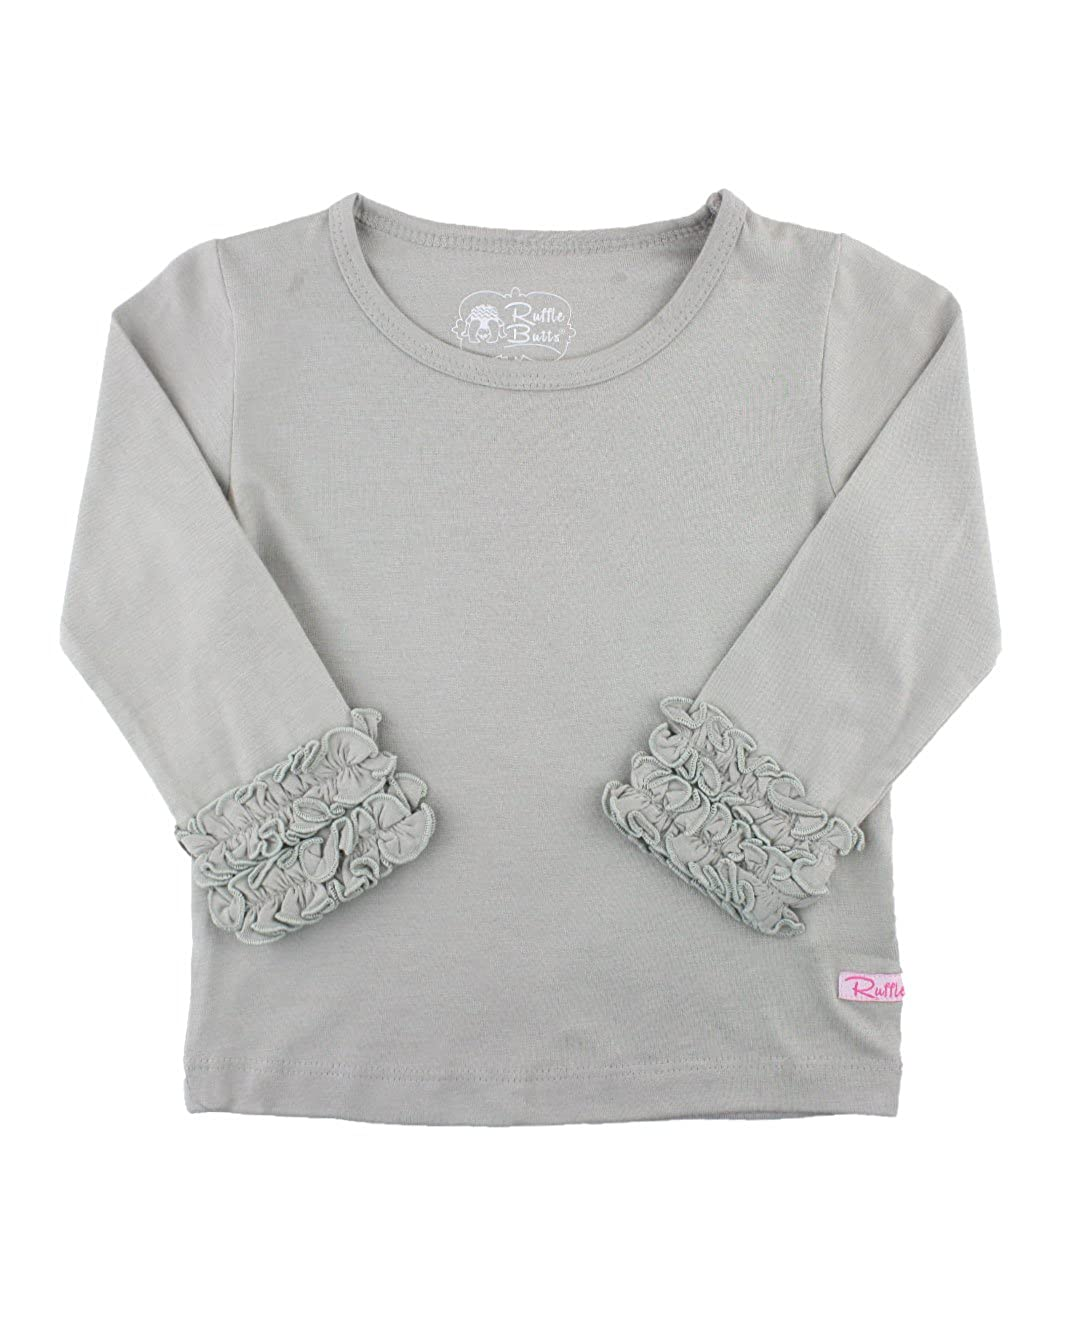 dd2f5678 Amazon.com: RuffleButts Little Girls Undershirt - Extra Soft Long Sleeved  Layering: Clothing